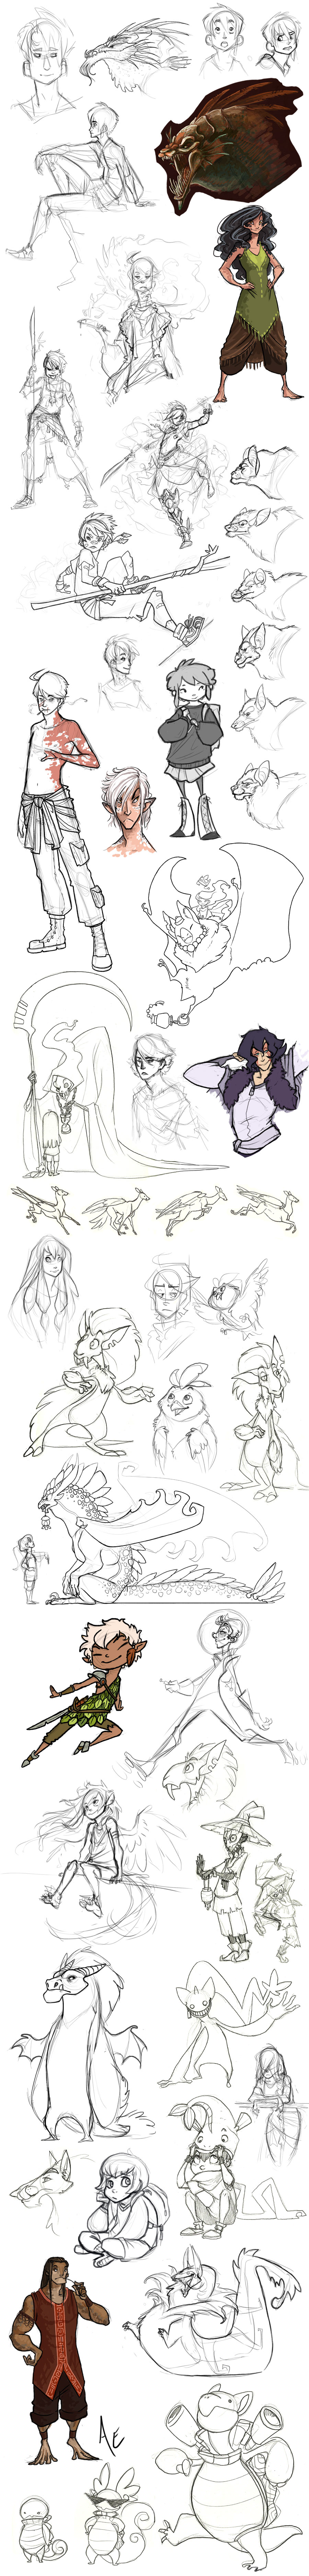 Sketchdump: Roughs and tumbles by Turtle-Arts